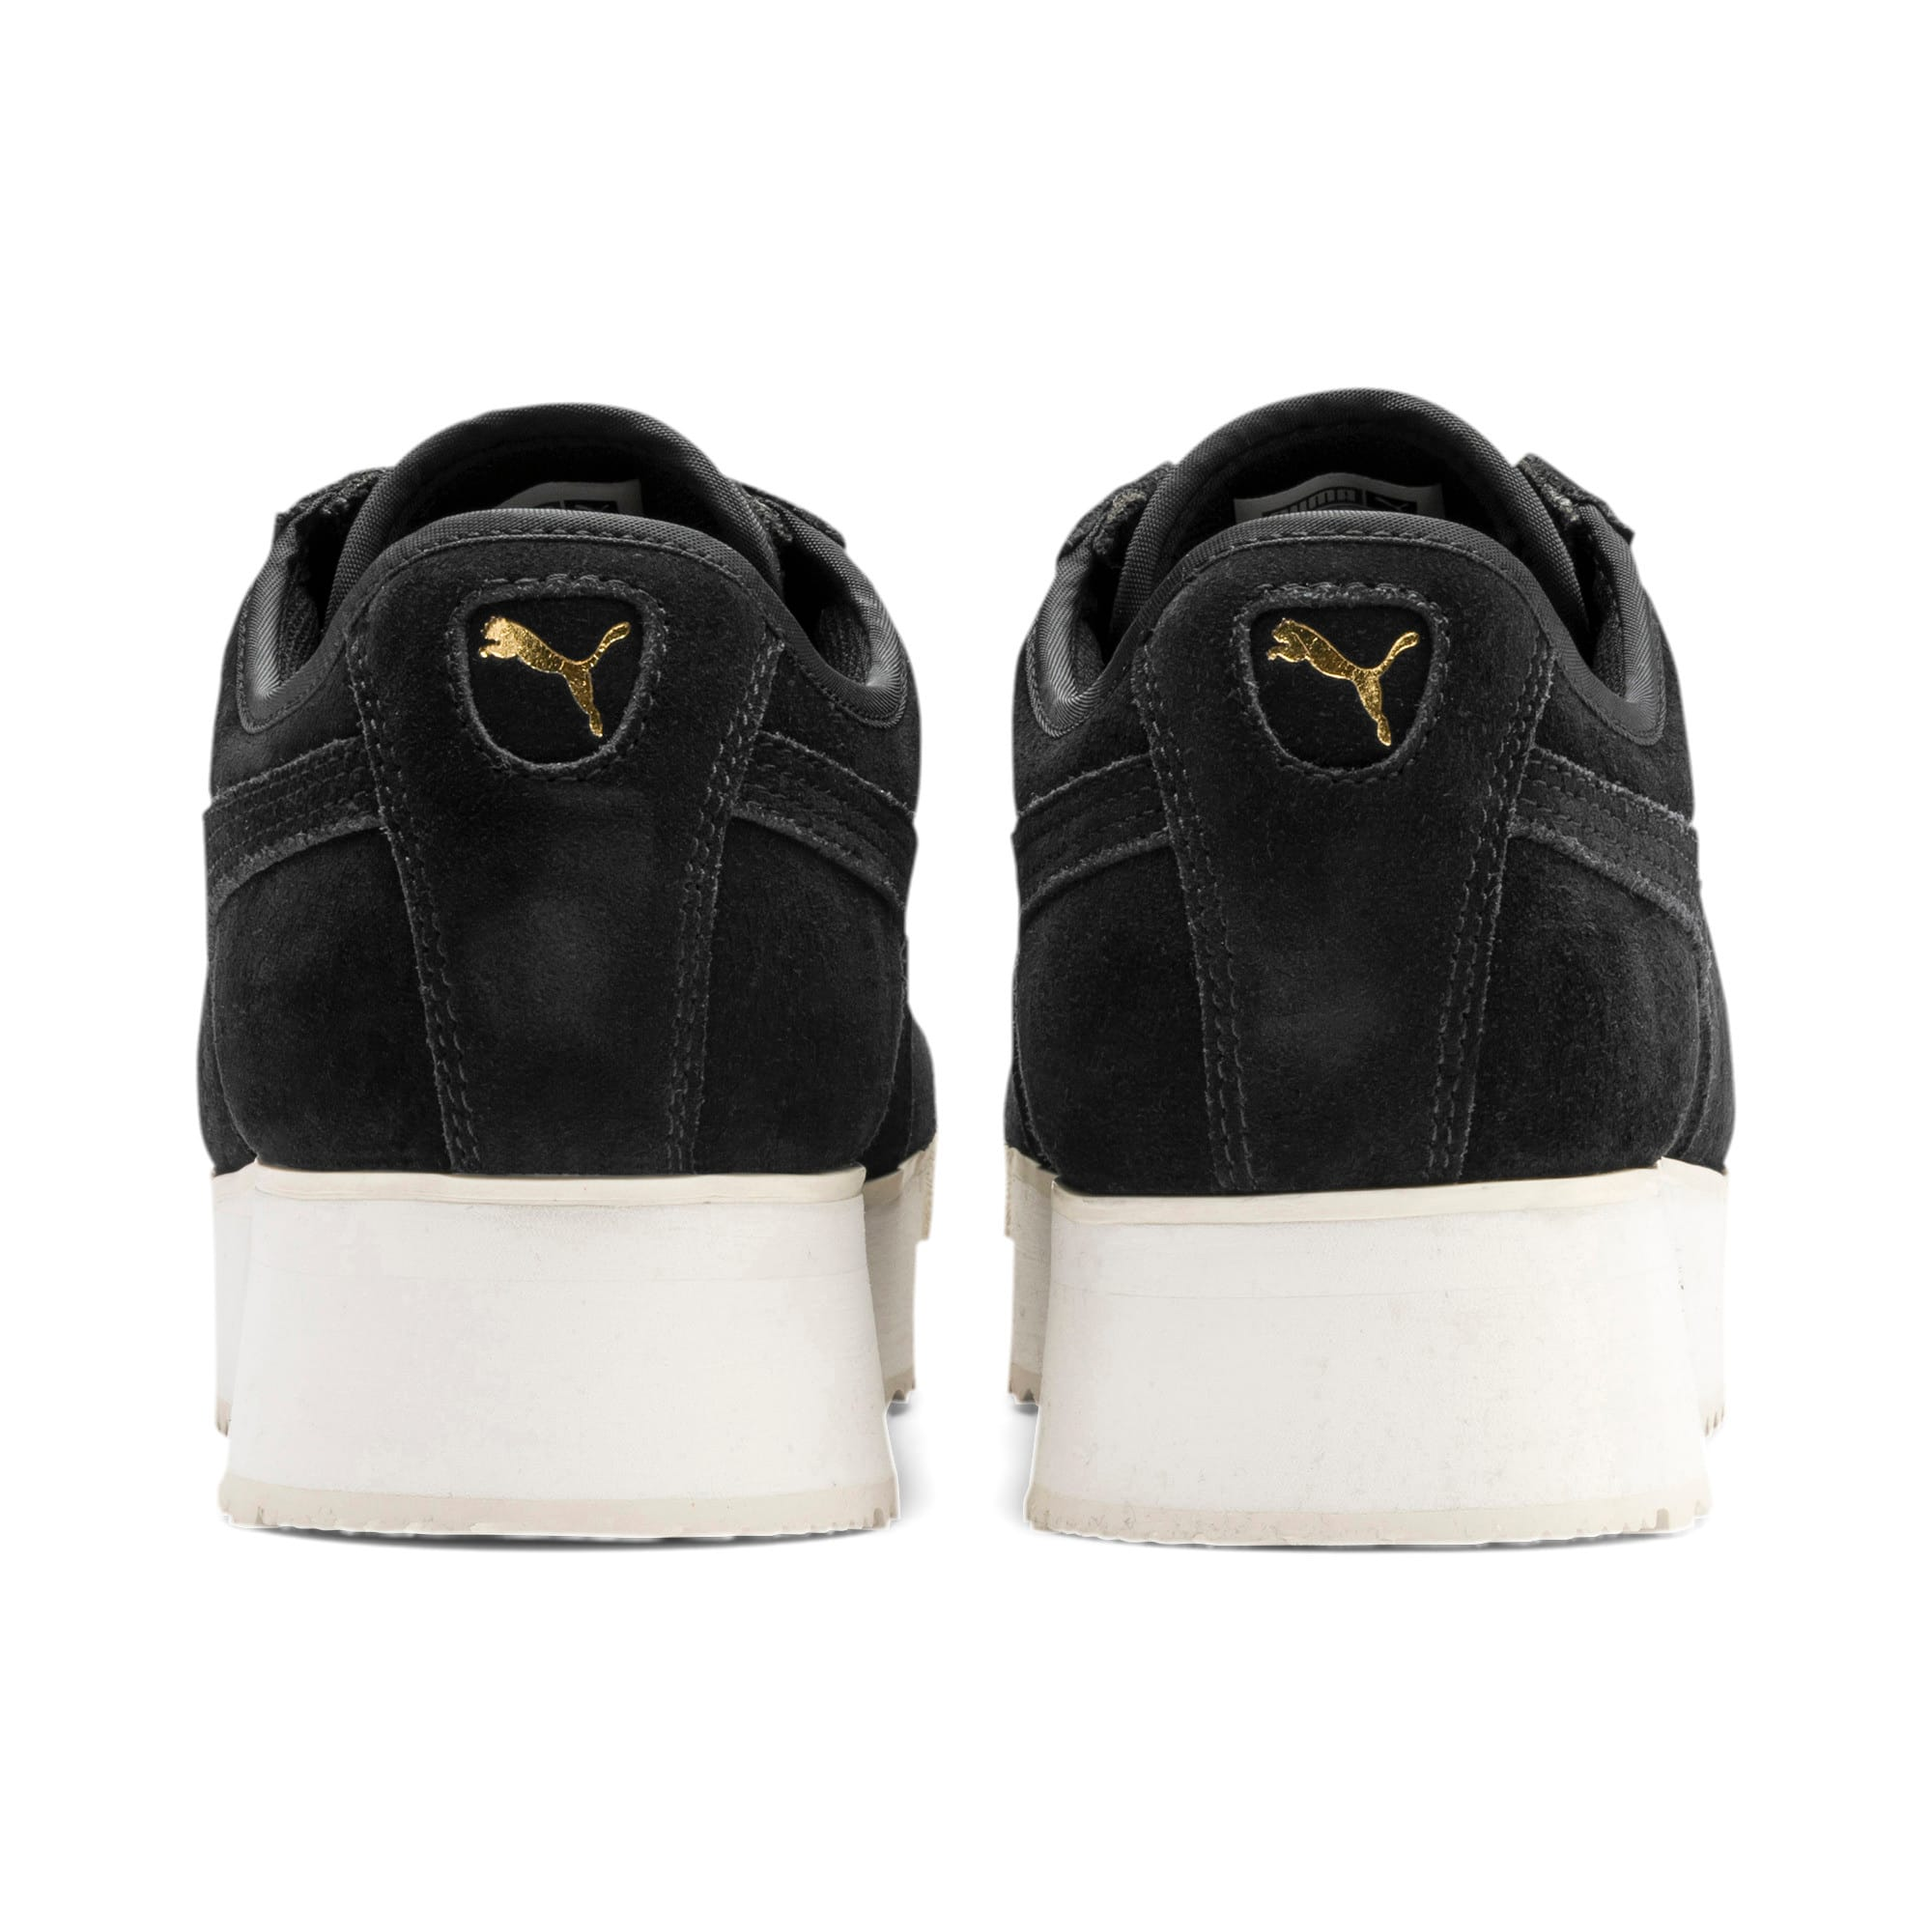 Thumbnail 4 of Roma Amor Suede Women's Sneakers, Puma Black-Puma Team Gold, medium